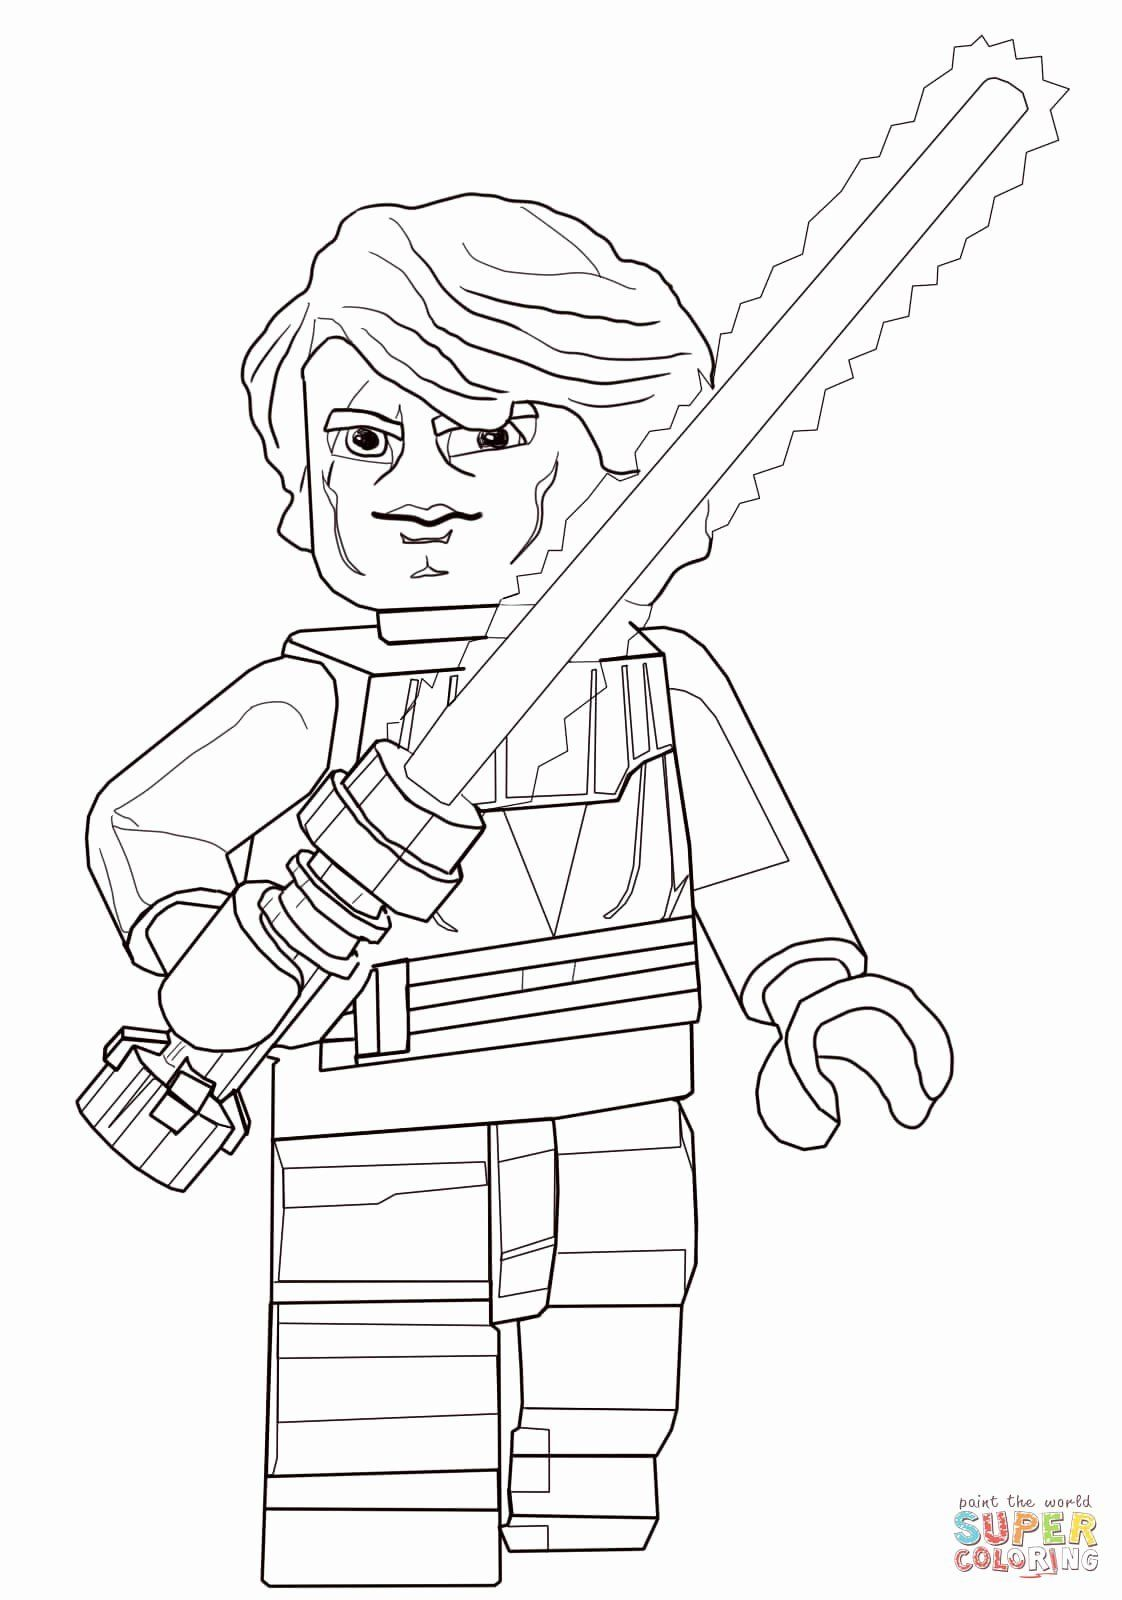 Lego Star Wars Coloring Page New Lego Star Wars Anakin Skywalker Coloring Page Star Wars Colors Star Wars Coloring Book Star Wars Coloring Sheet